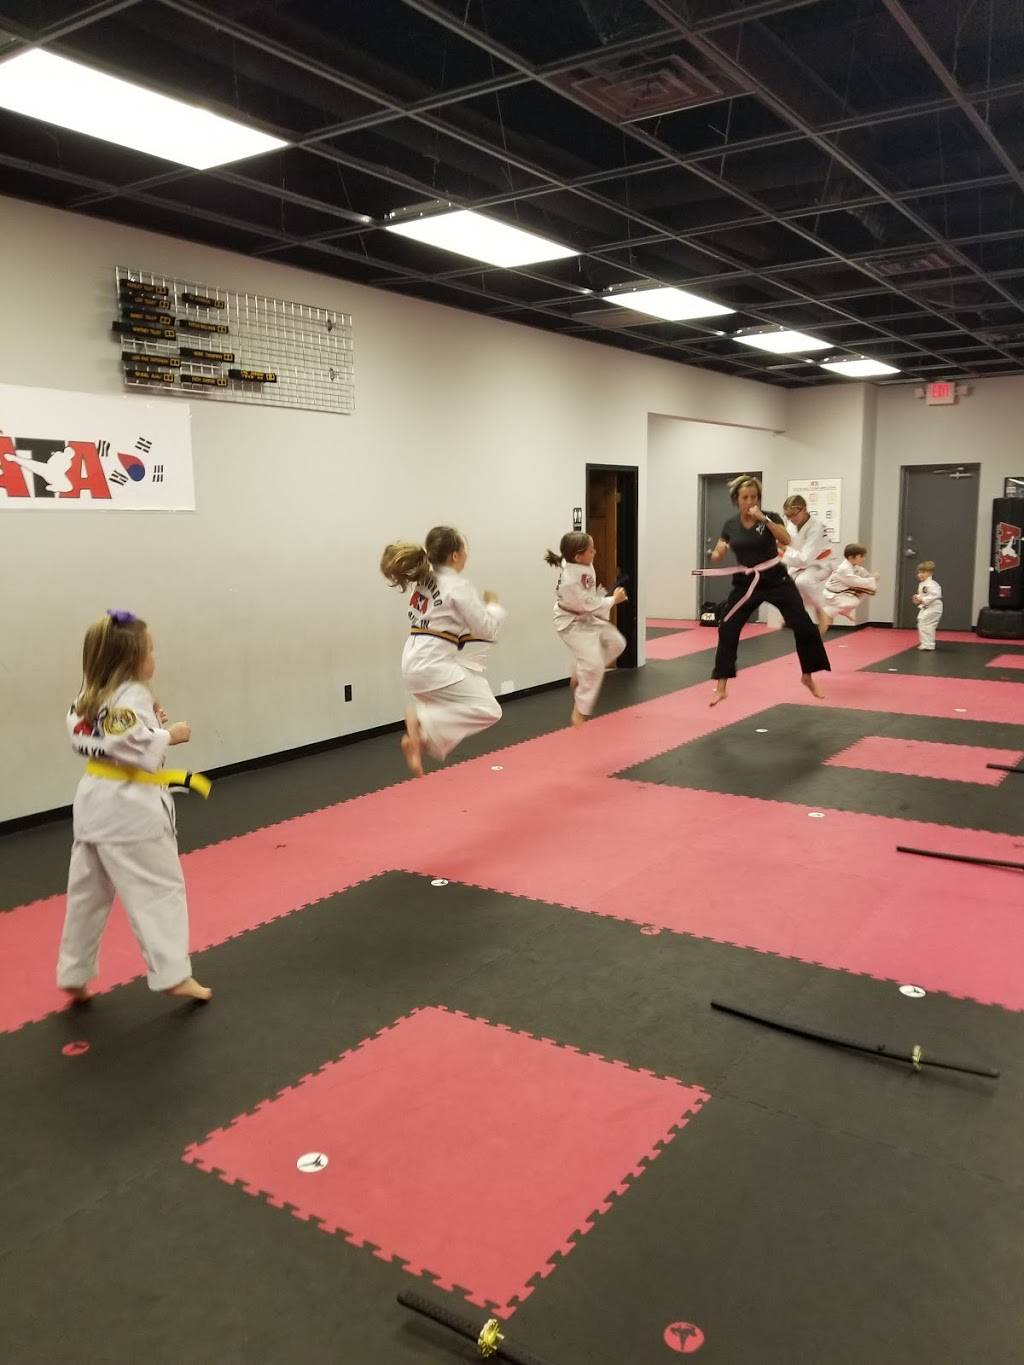 Dupont Taekwondo - health  | Photo 6 of 8 | Address: 8804 Coldwater Rd, Fort Wayne, IN 46825, USA | Phone: (260) 490-1282